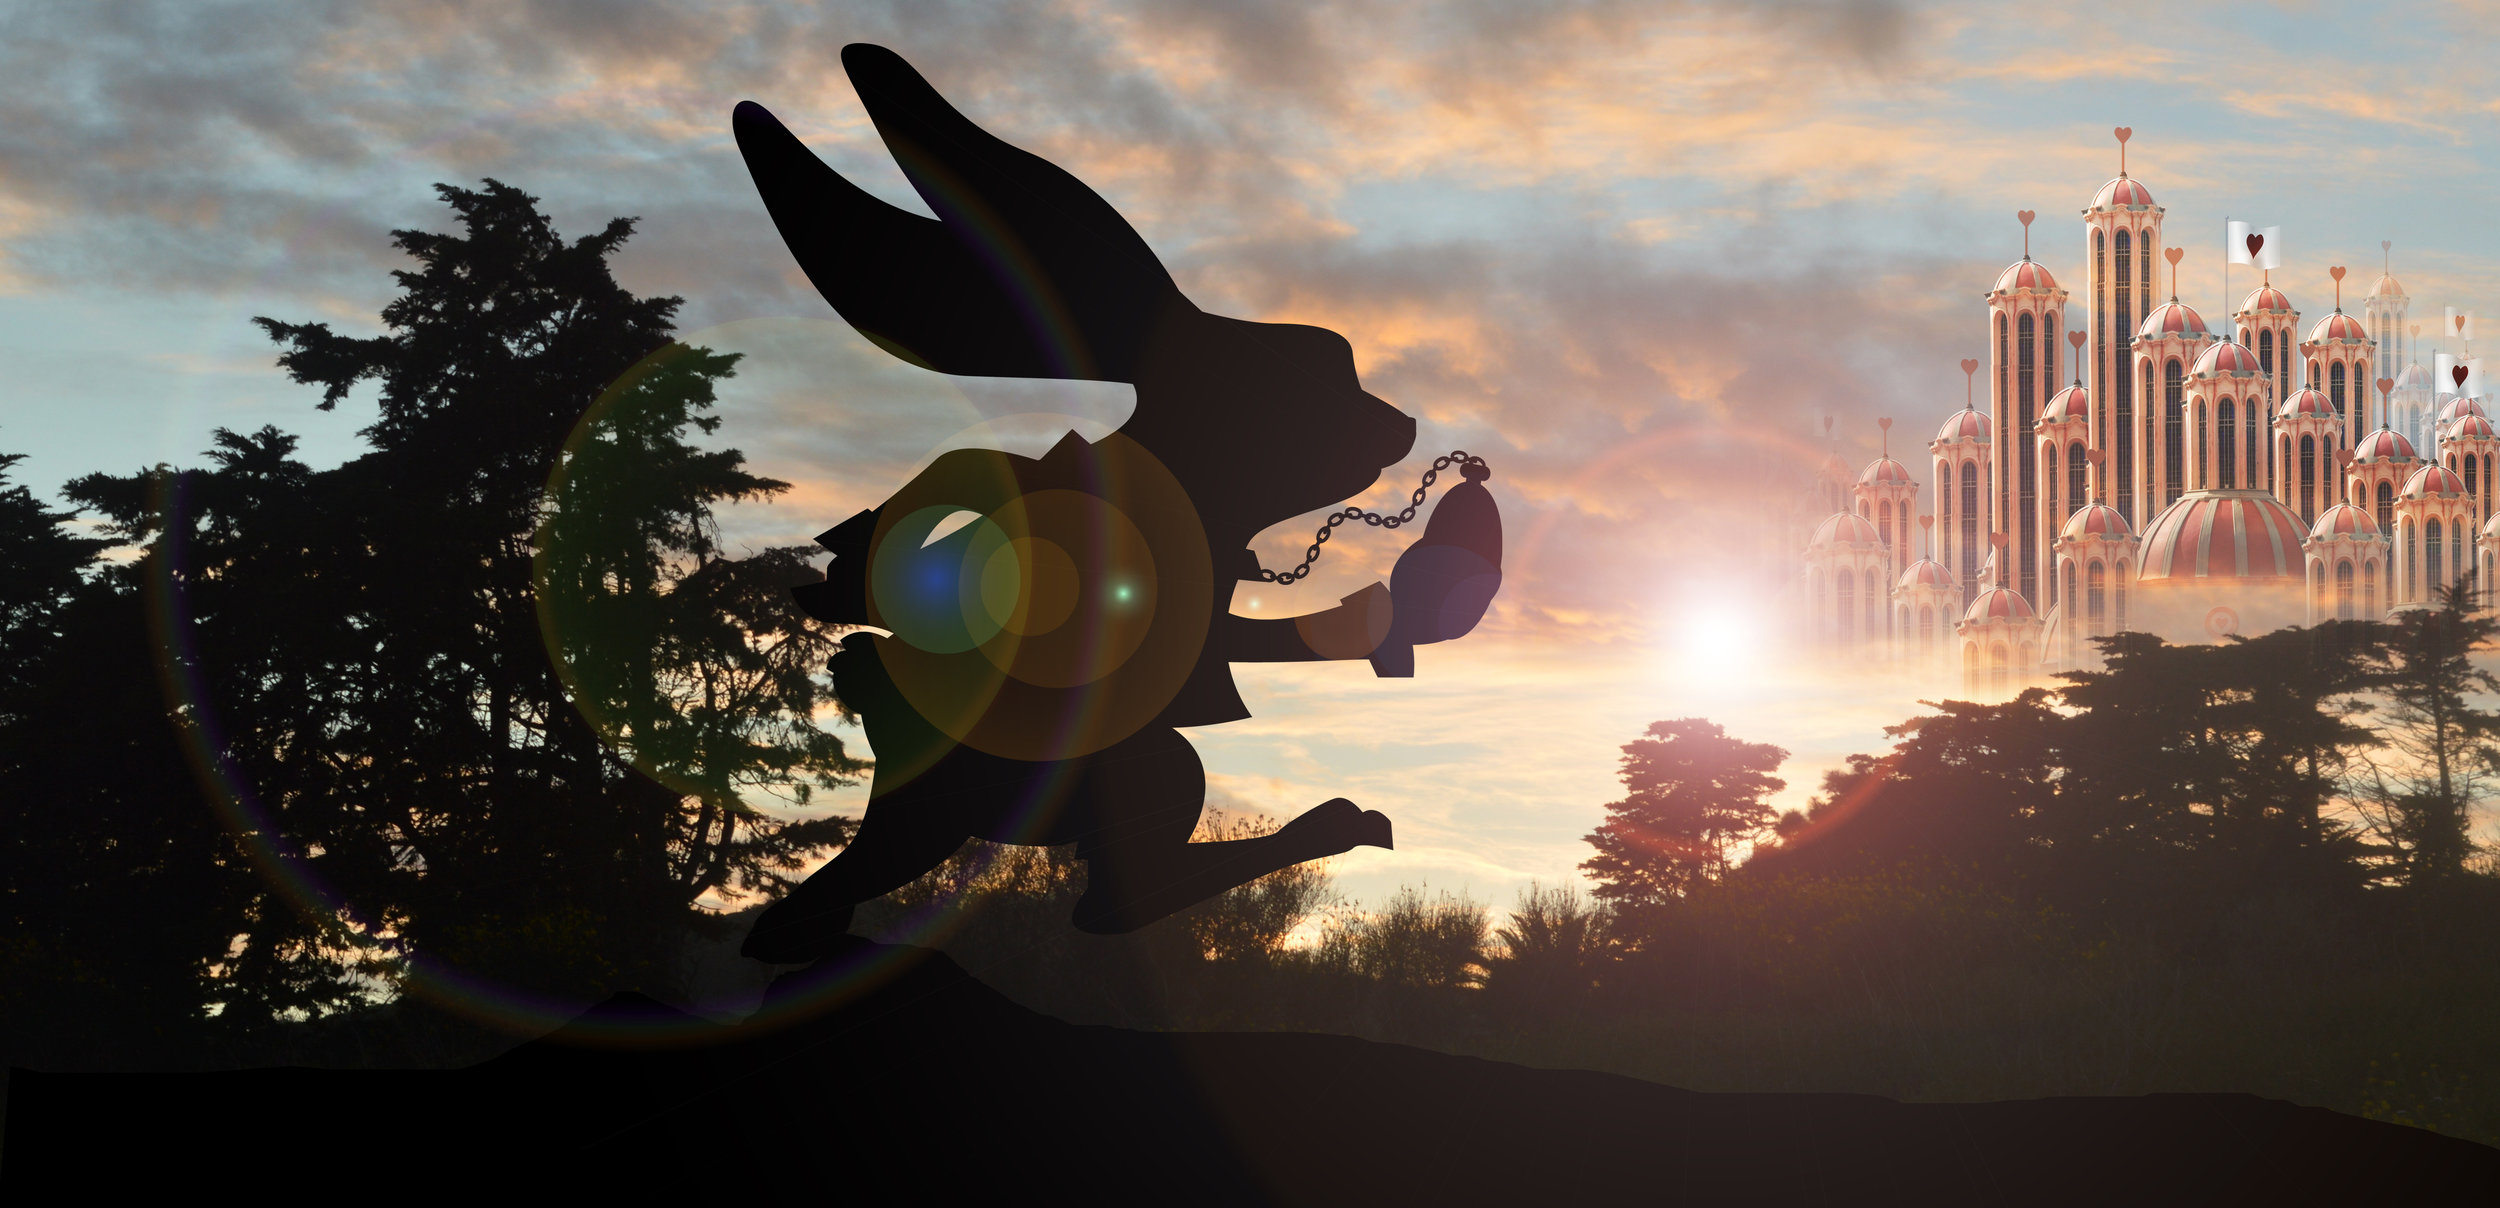 silhouette of White rabbit running with heart palace in background